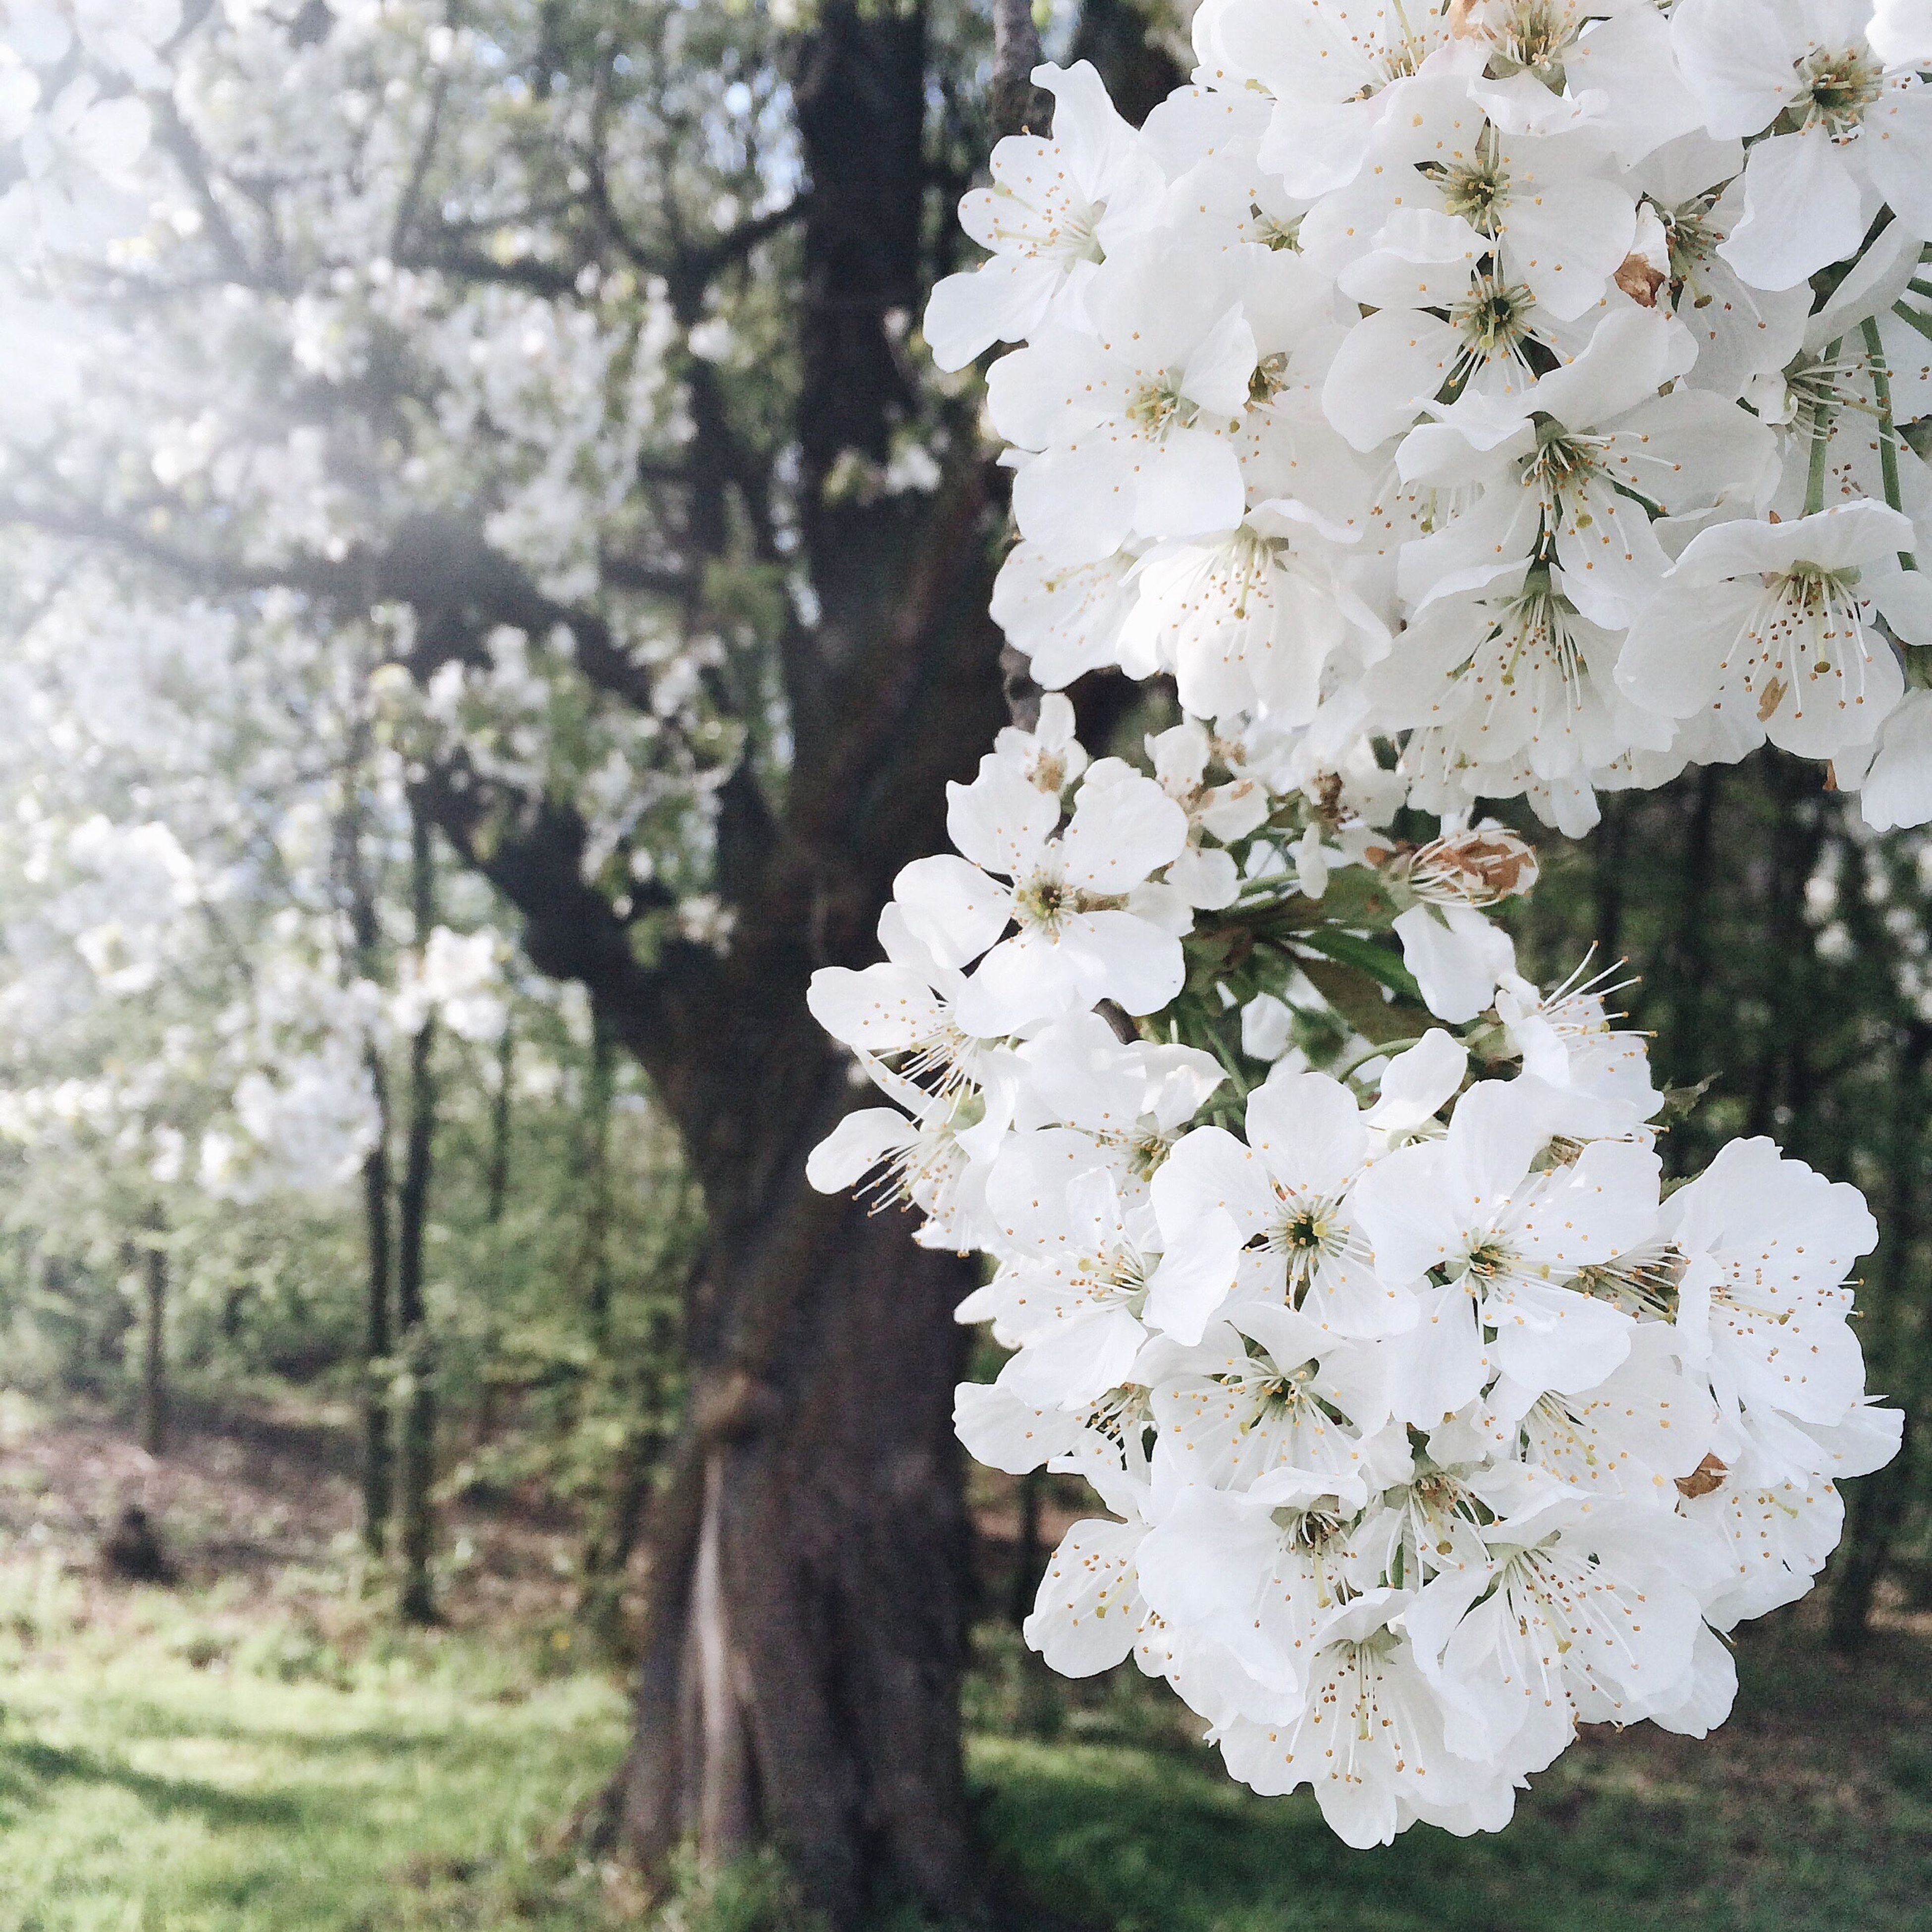 flower, tree, white color, freshness, growth, fragility, branch, beauty in nature, cherry blossom, nature, blossom, cherry tree, focus on foreground, petal, in bloom, springtime, apple tree, blooming, close-up, white